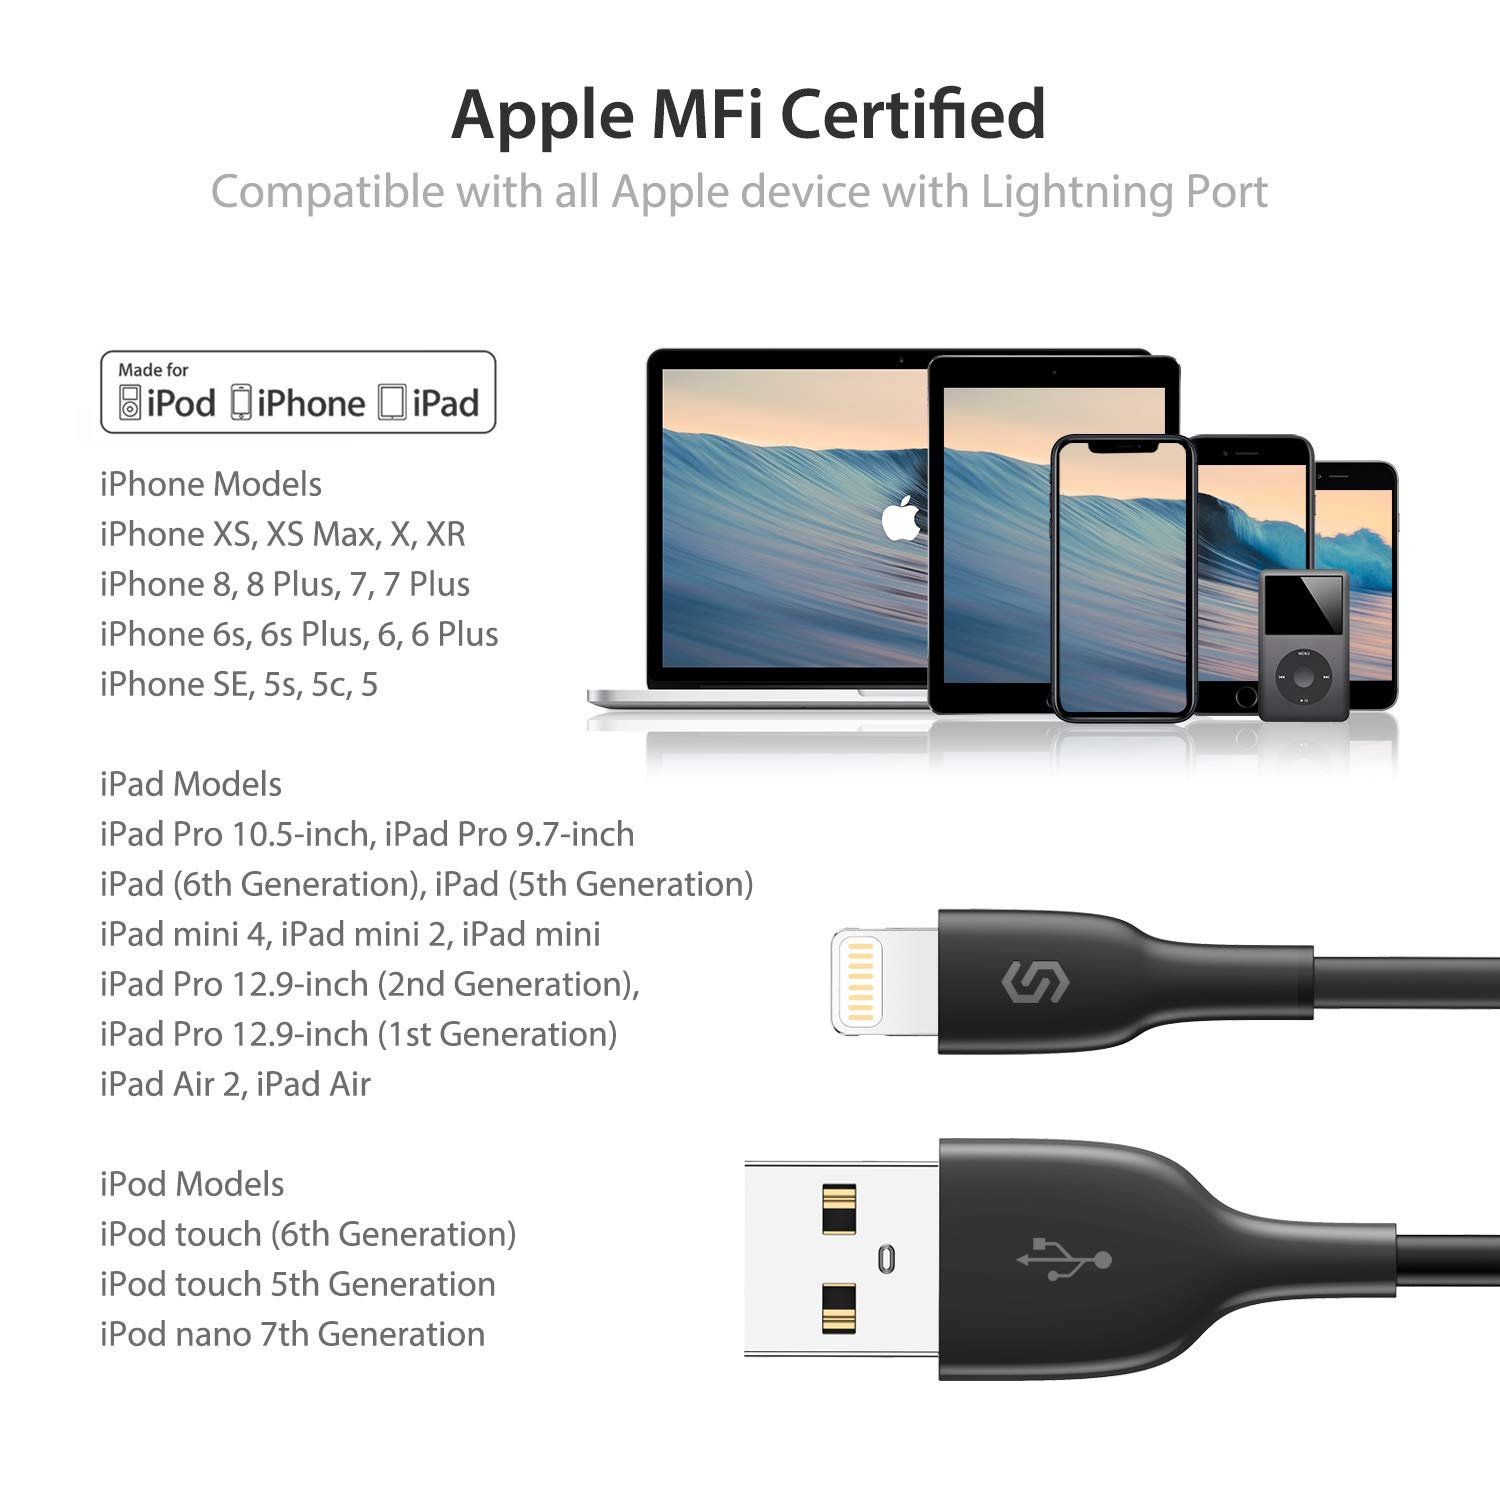 3.3ft//1m Apple Fast Charging Cable USB Lead for iPhone XS Max XR X 8 8 Plus 7 7 Plus 6s 6s Plus 6 6 Plus SE 5s 5c 5 iPad iPod White Syncwire Lightning iPhone Charger Cable Apple MFi Certified